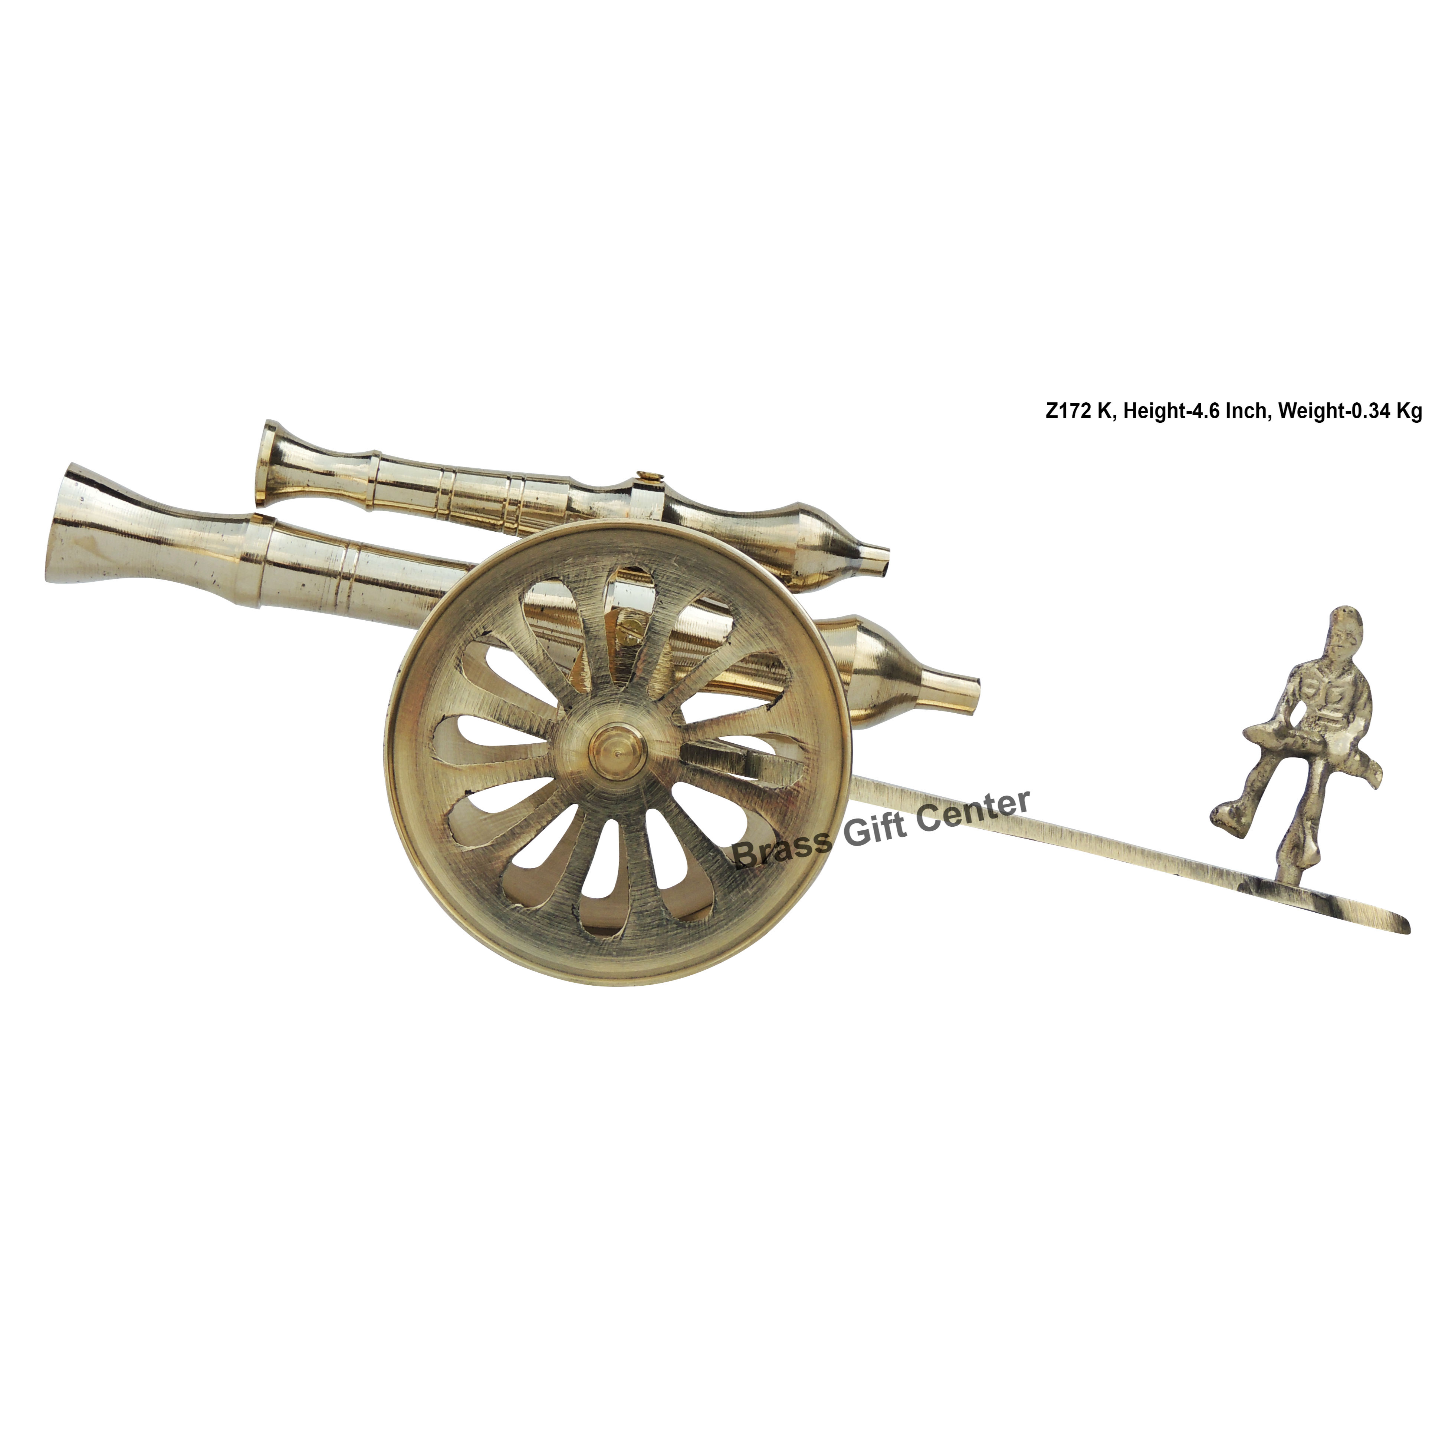 Brass Small Toop Cannon No 12 - 10.83.64.6 Inch  Z172 K